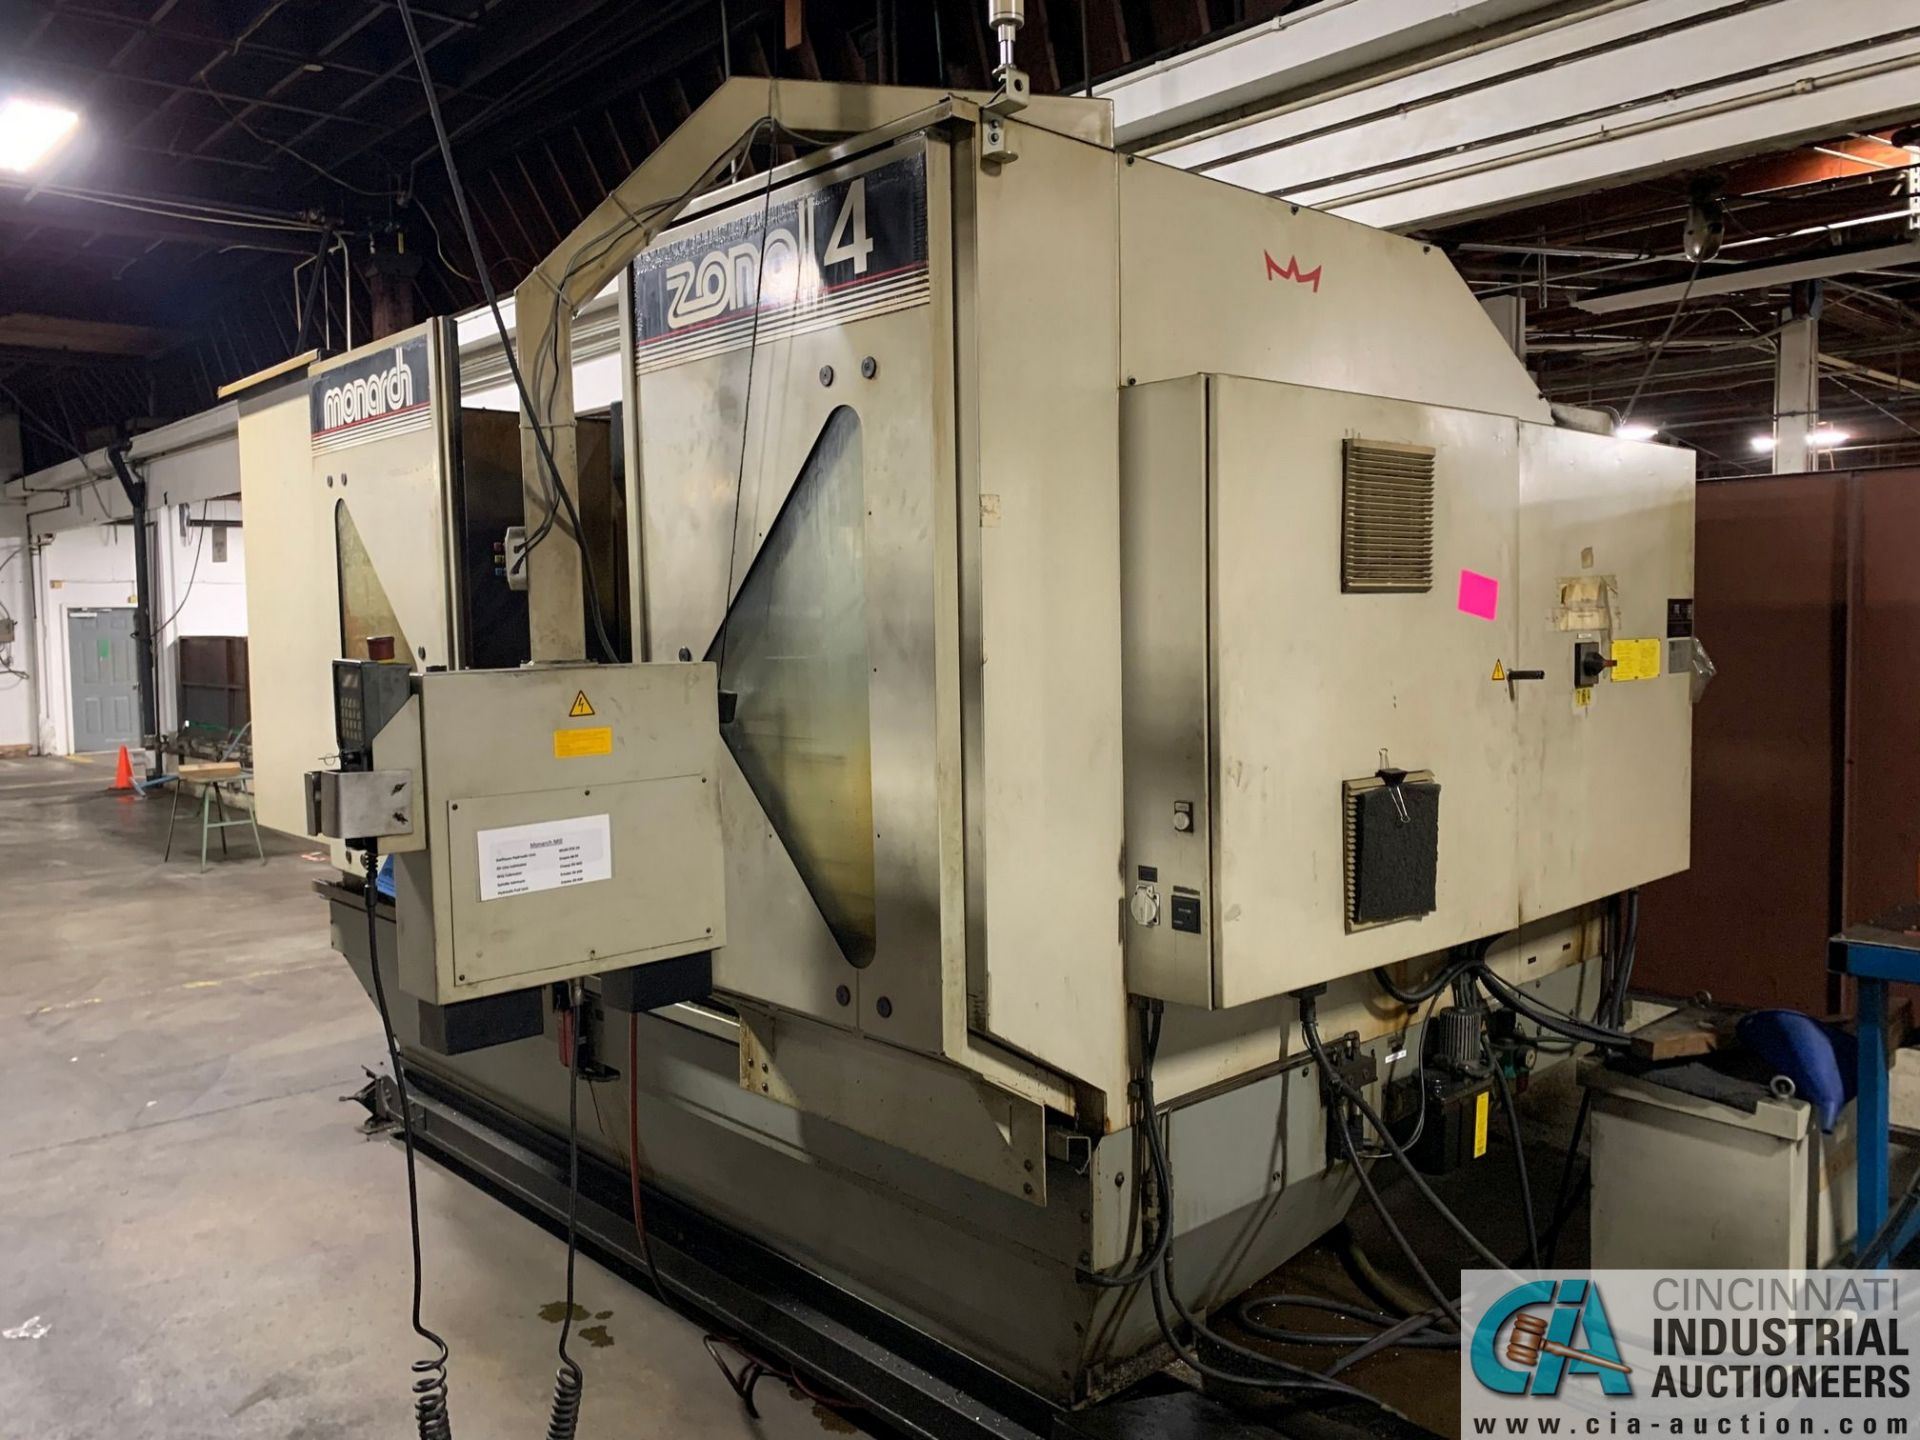 MONARCH UNISIGN TYPE UNIVERS 4 ZONALL 4 CNC VERTICAL MACHINING CENTER; S/N 99Z402, NO. 4292, - Image 5 of 11